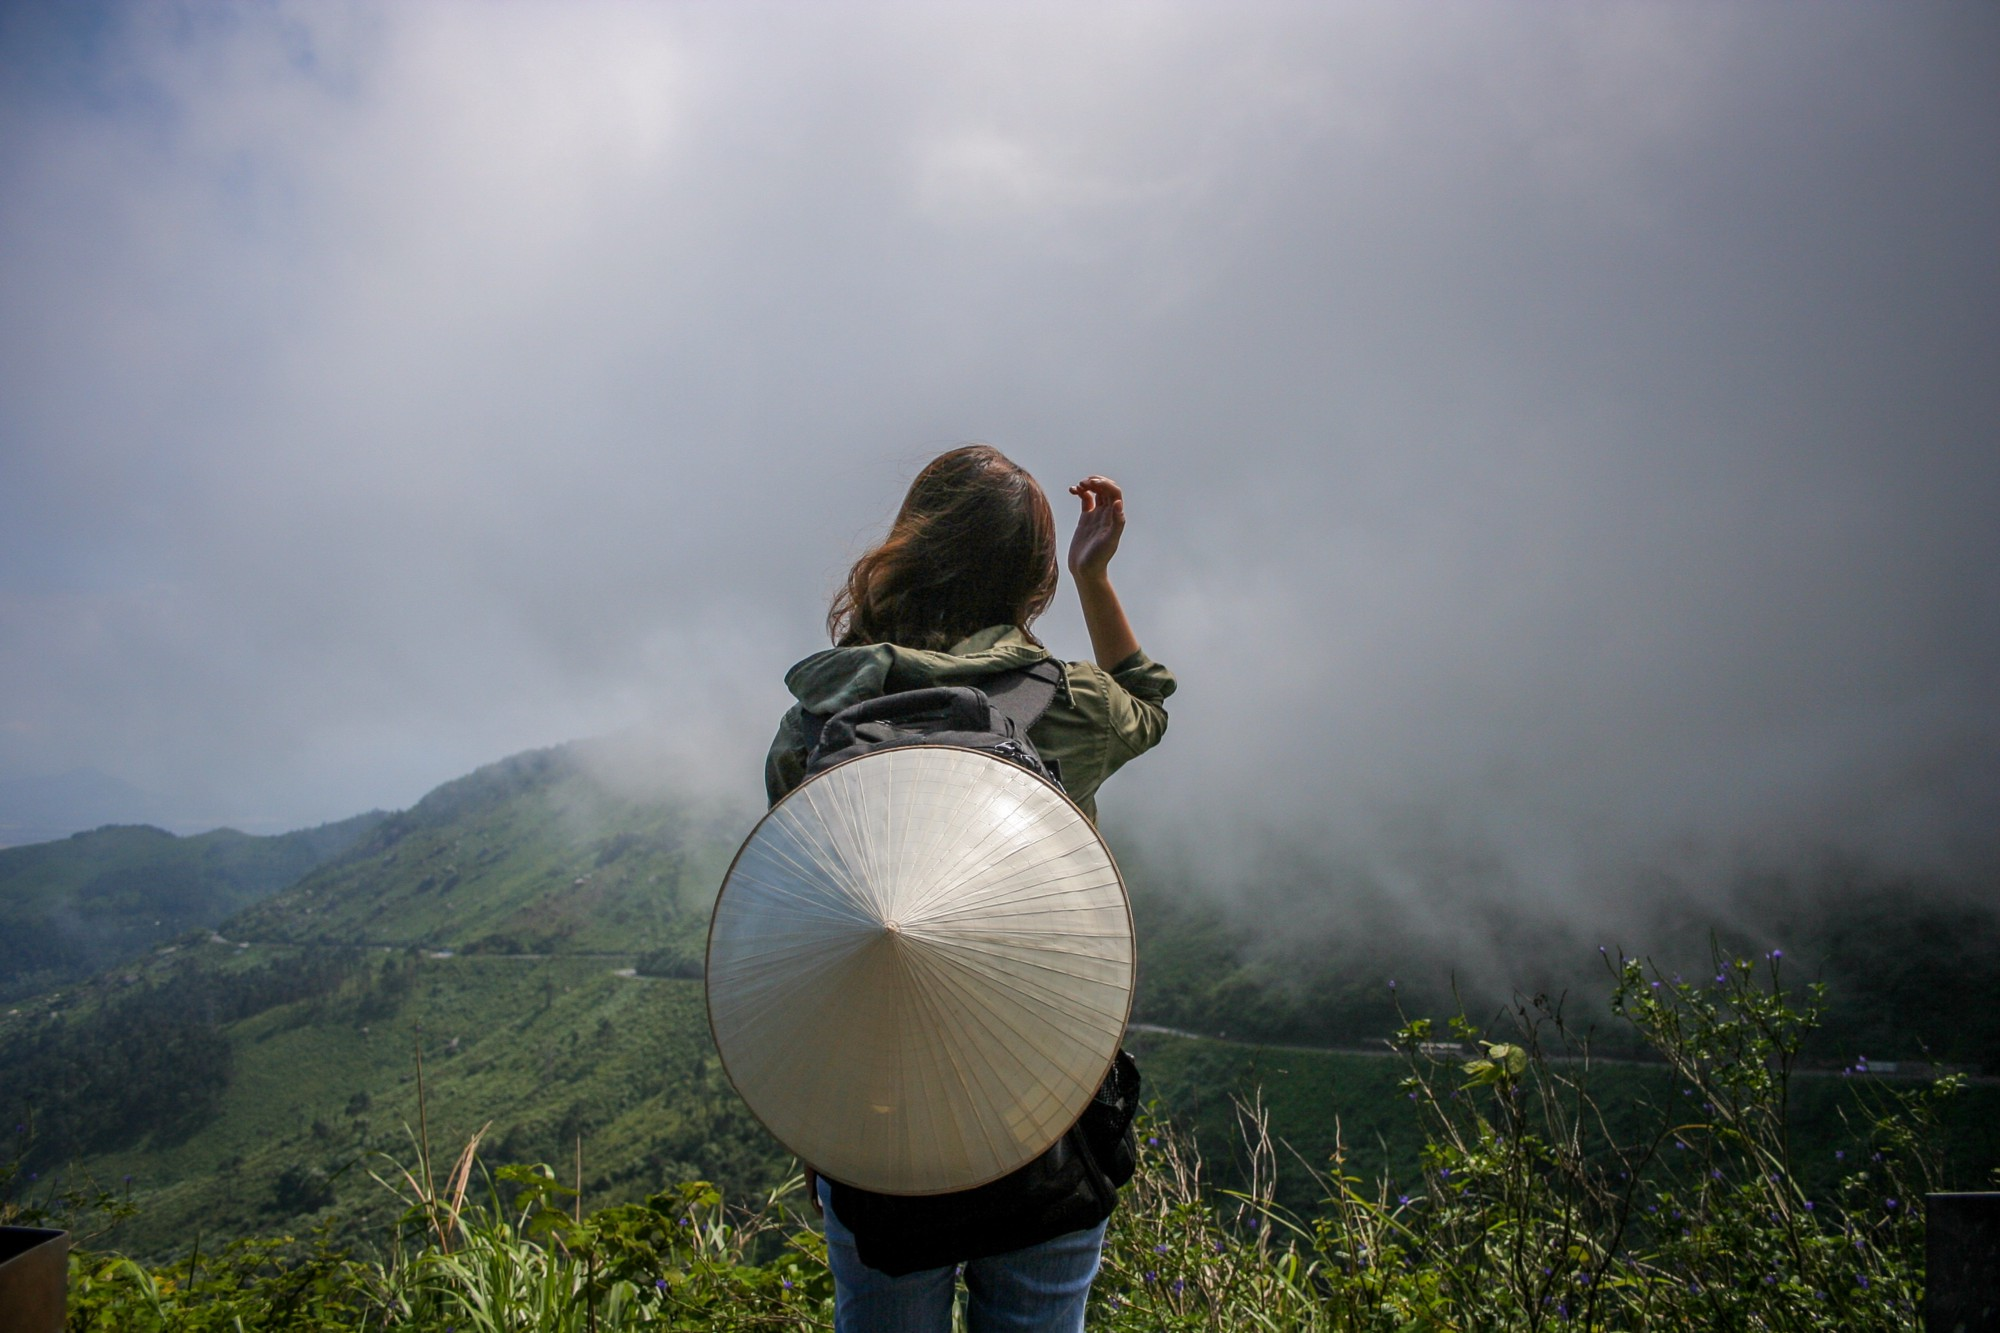 Someone looking at a scenic landscape on a cloudy day, with a rice hat attached to the back